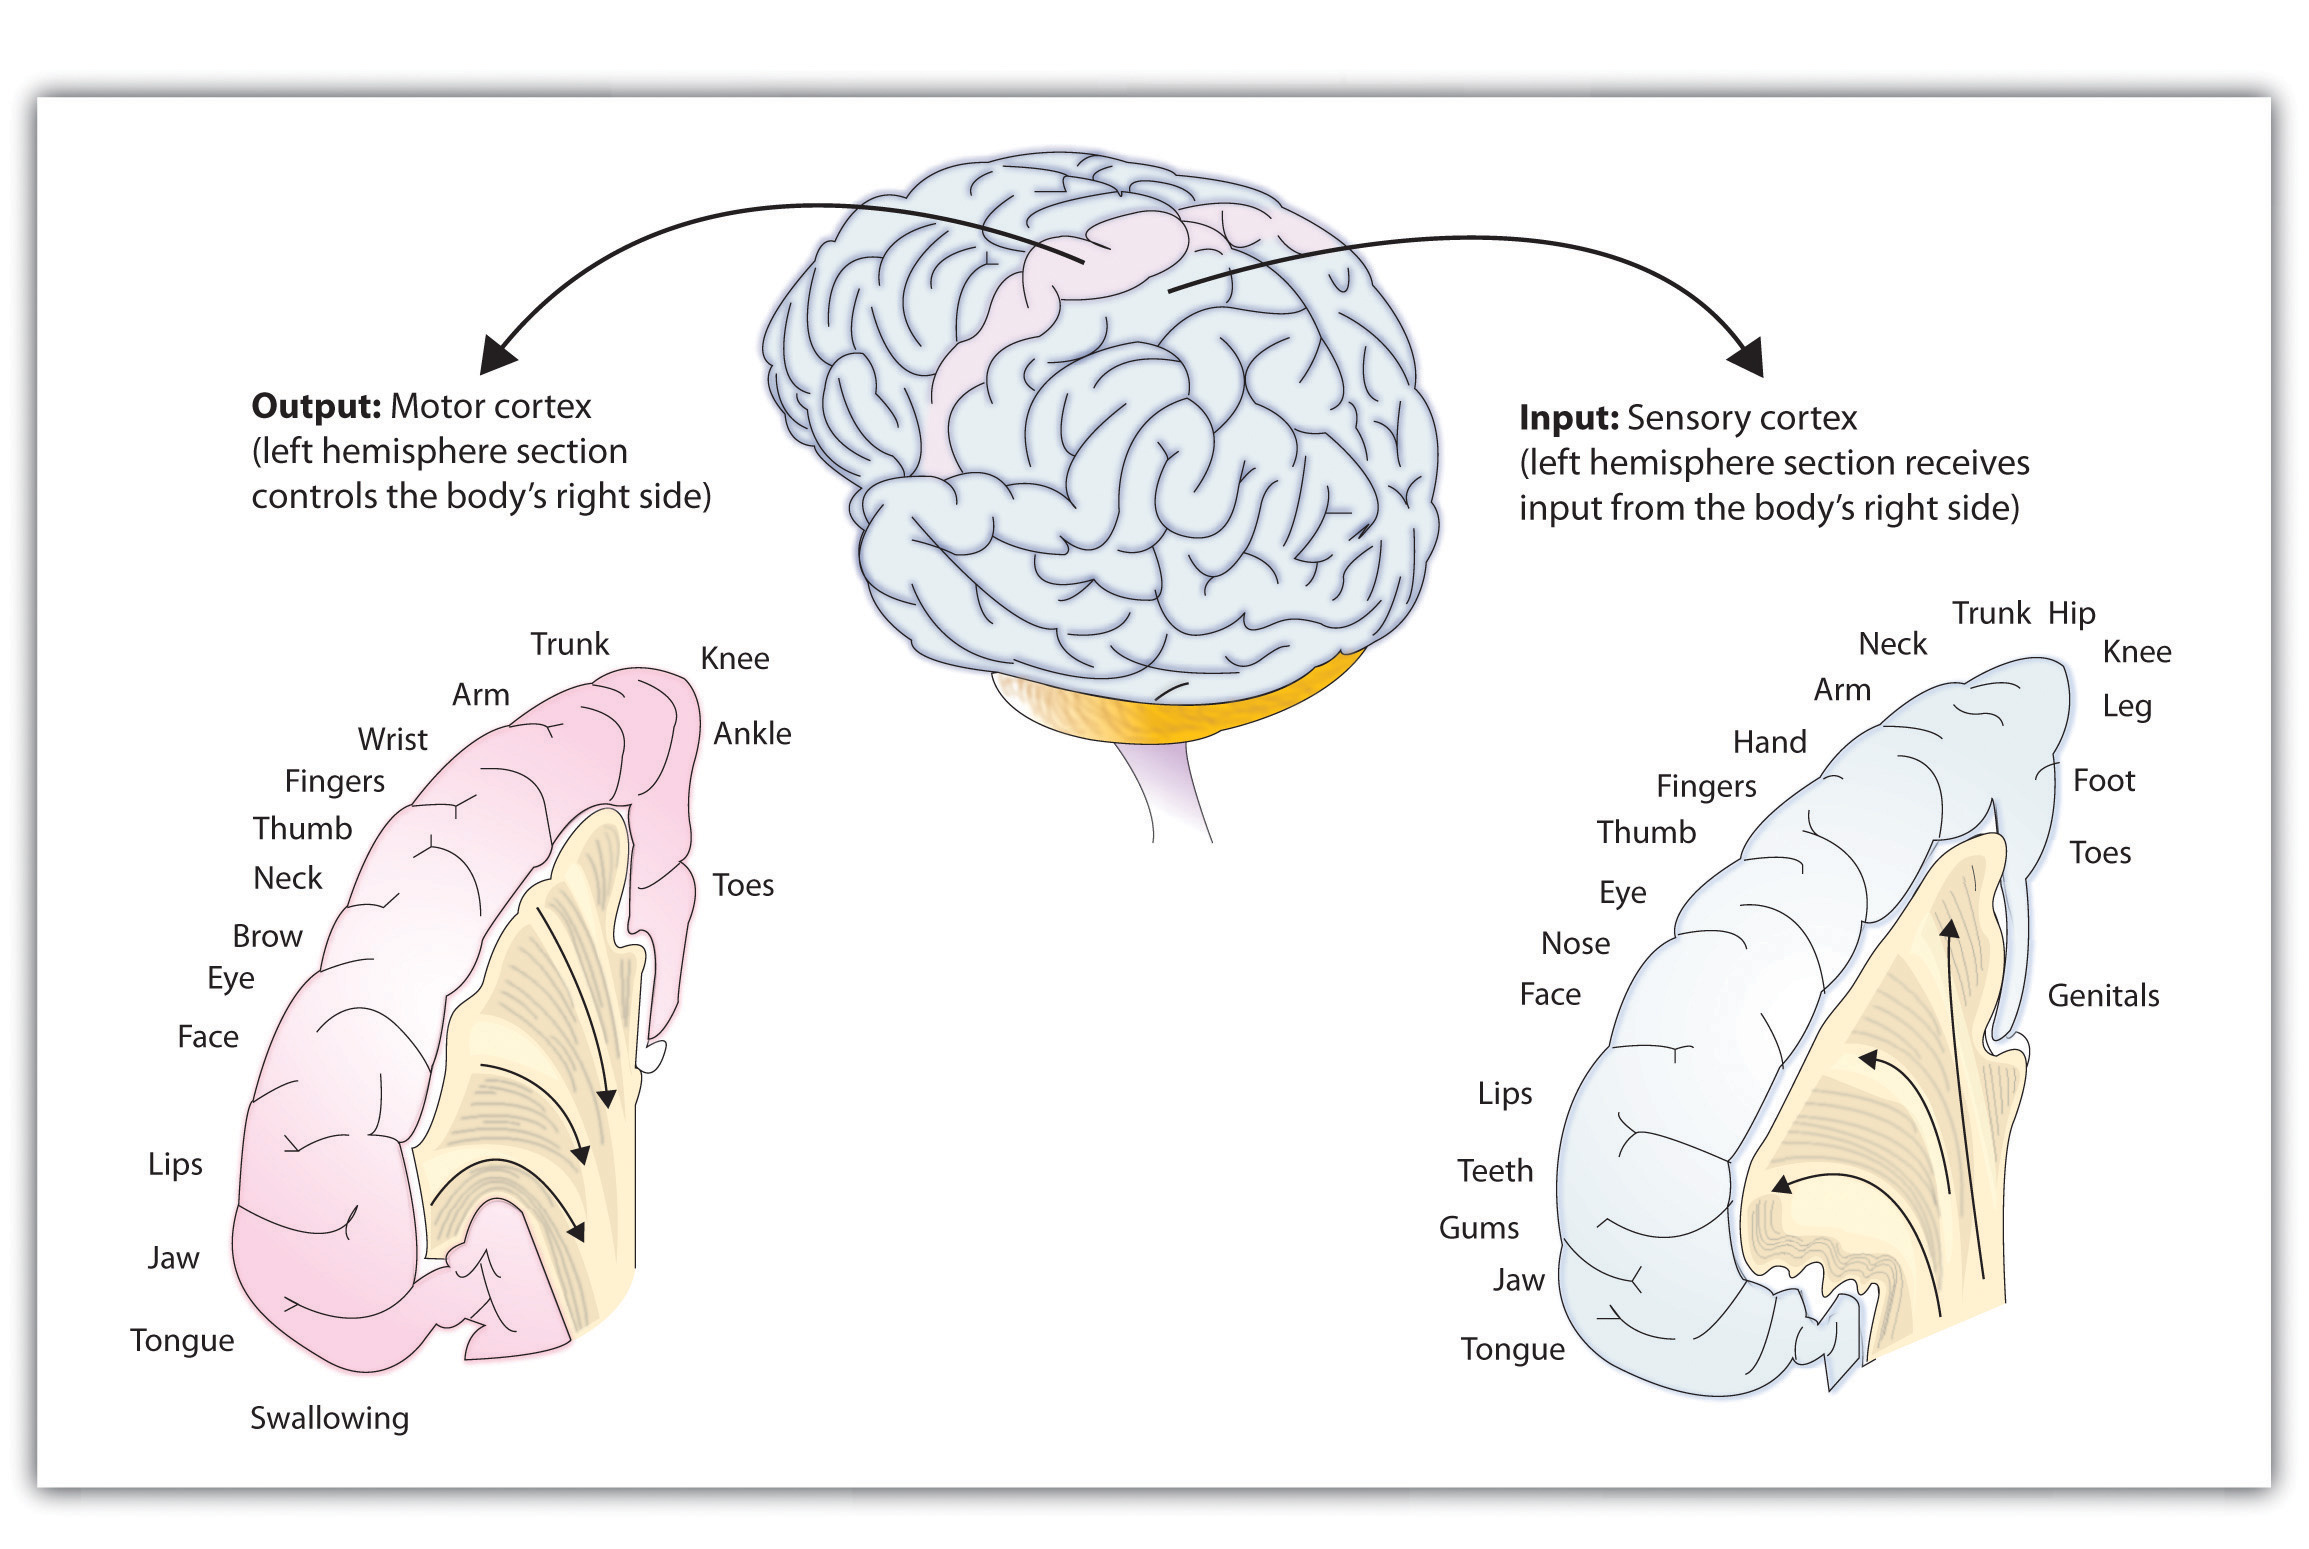 The sensory cortex and the motor cortex